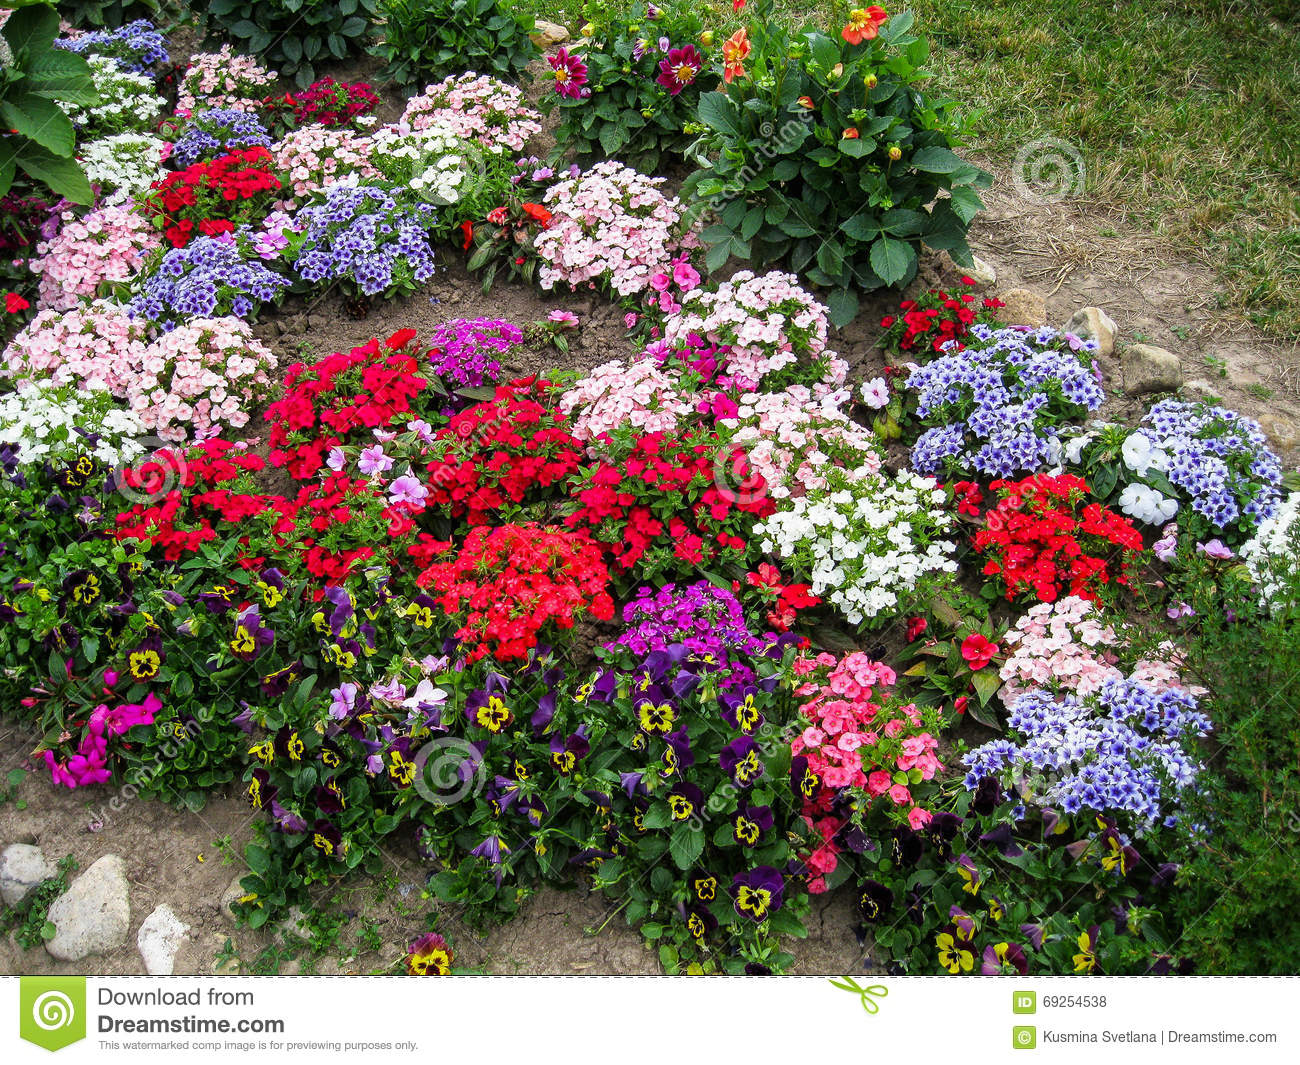 A flower bed in the garden stock photo image 69254538 for Ornamental trees for flower beds